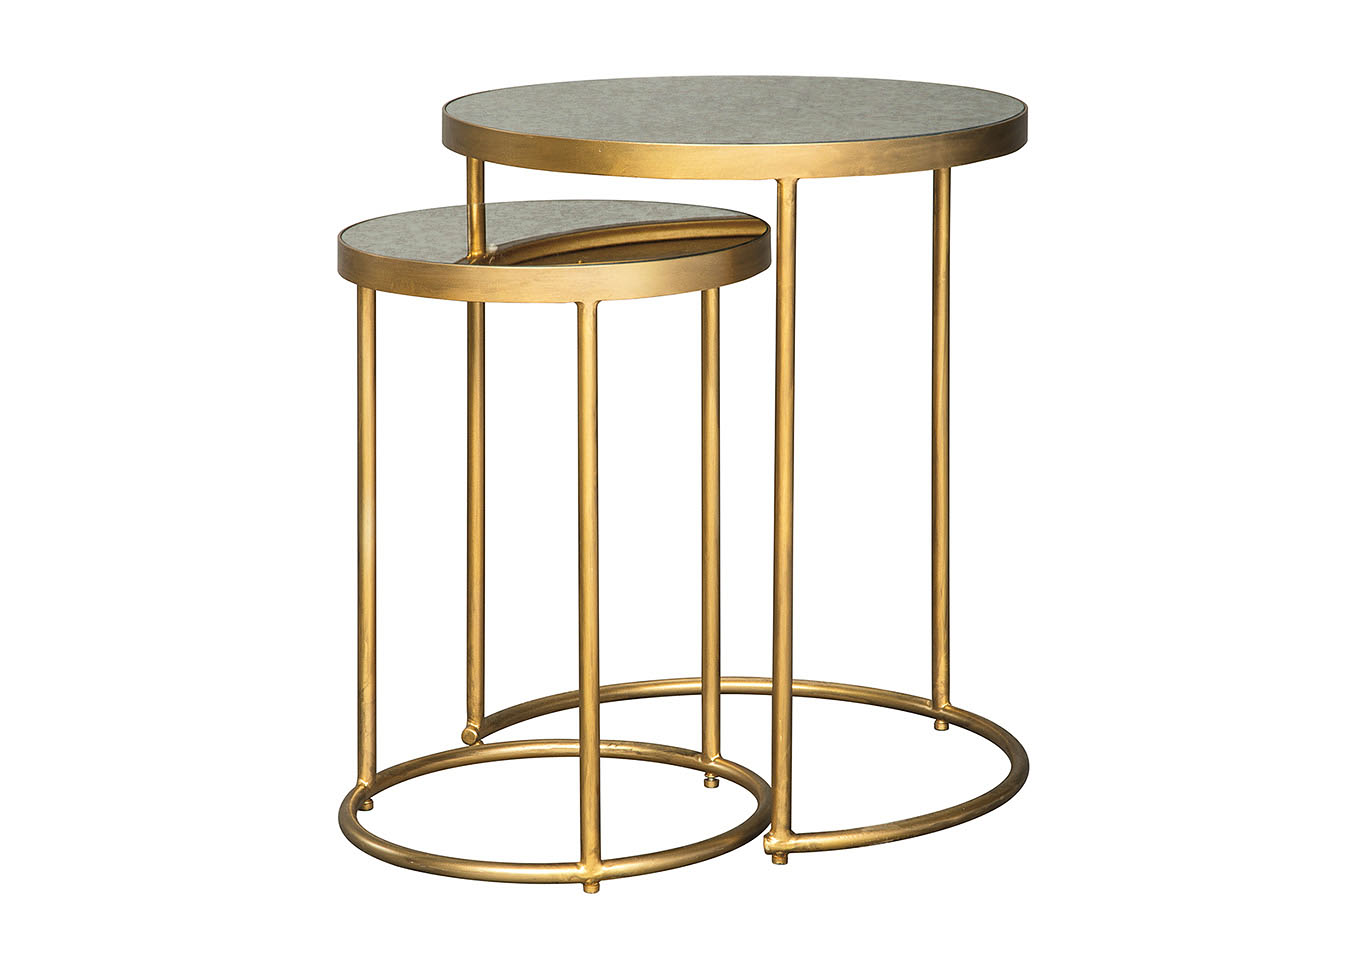 furniture plus majaci gold finish white accent table set signature design tiffany light fixtures marble small glass lamps west elm globe floor lamp threshold transitions metal